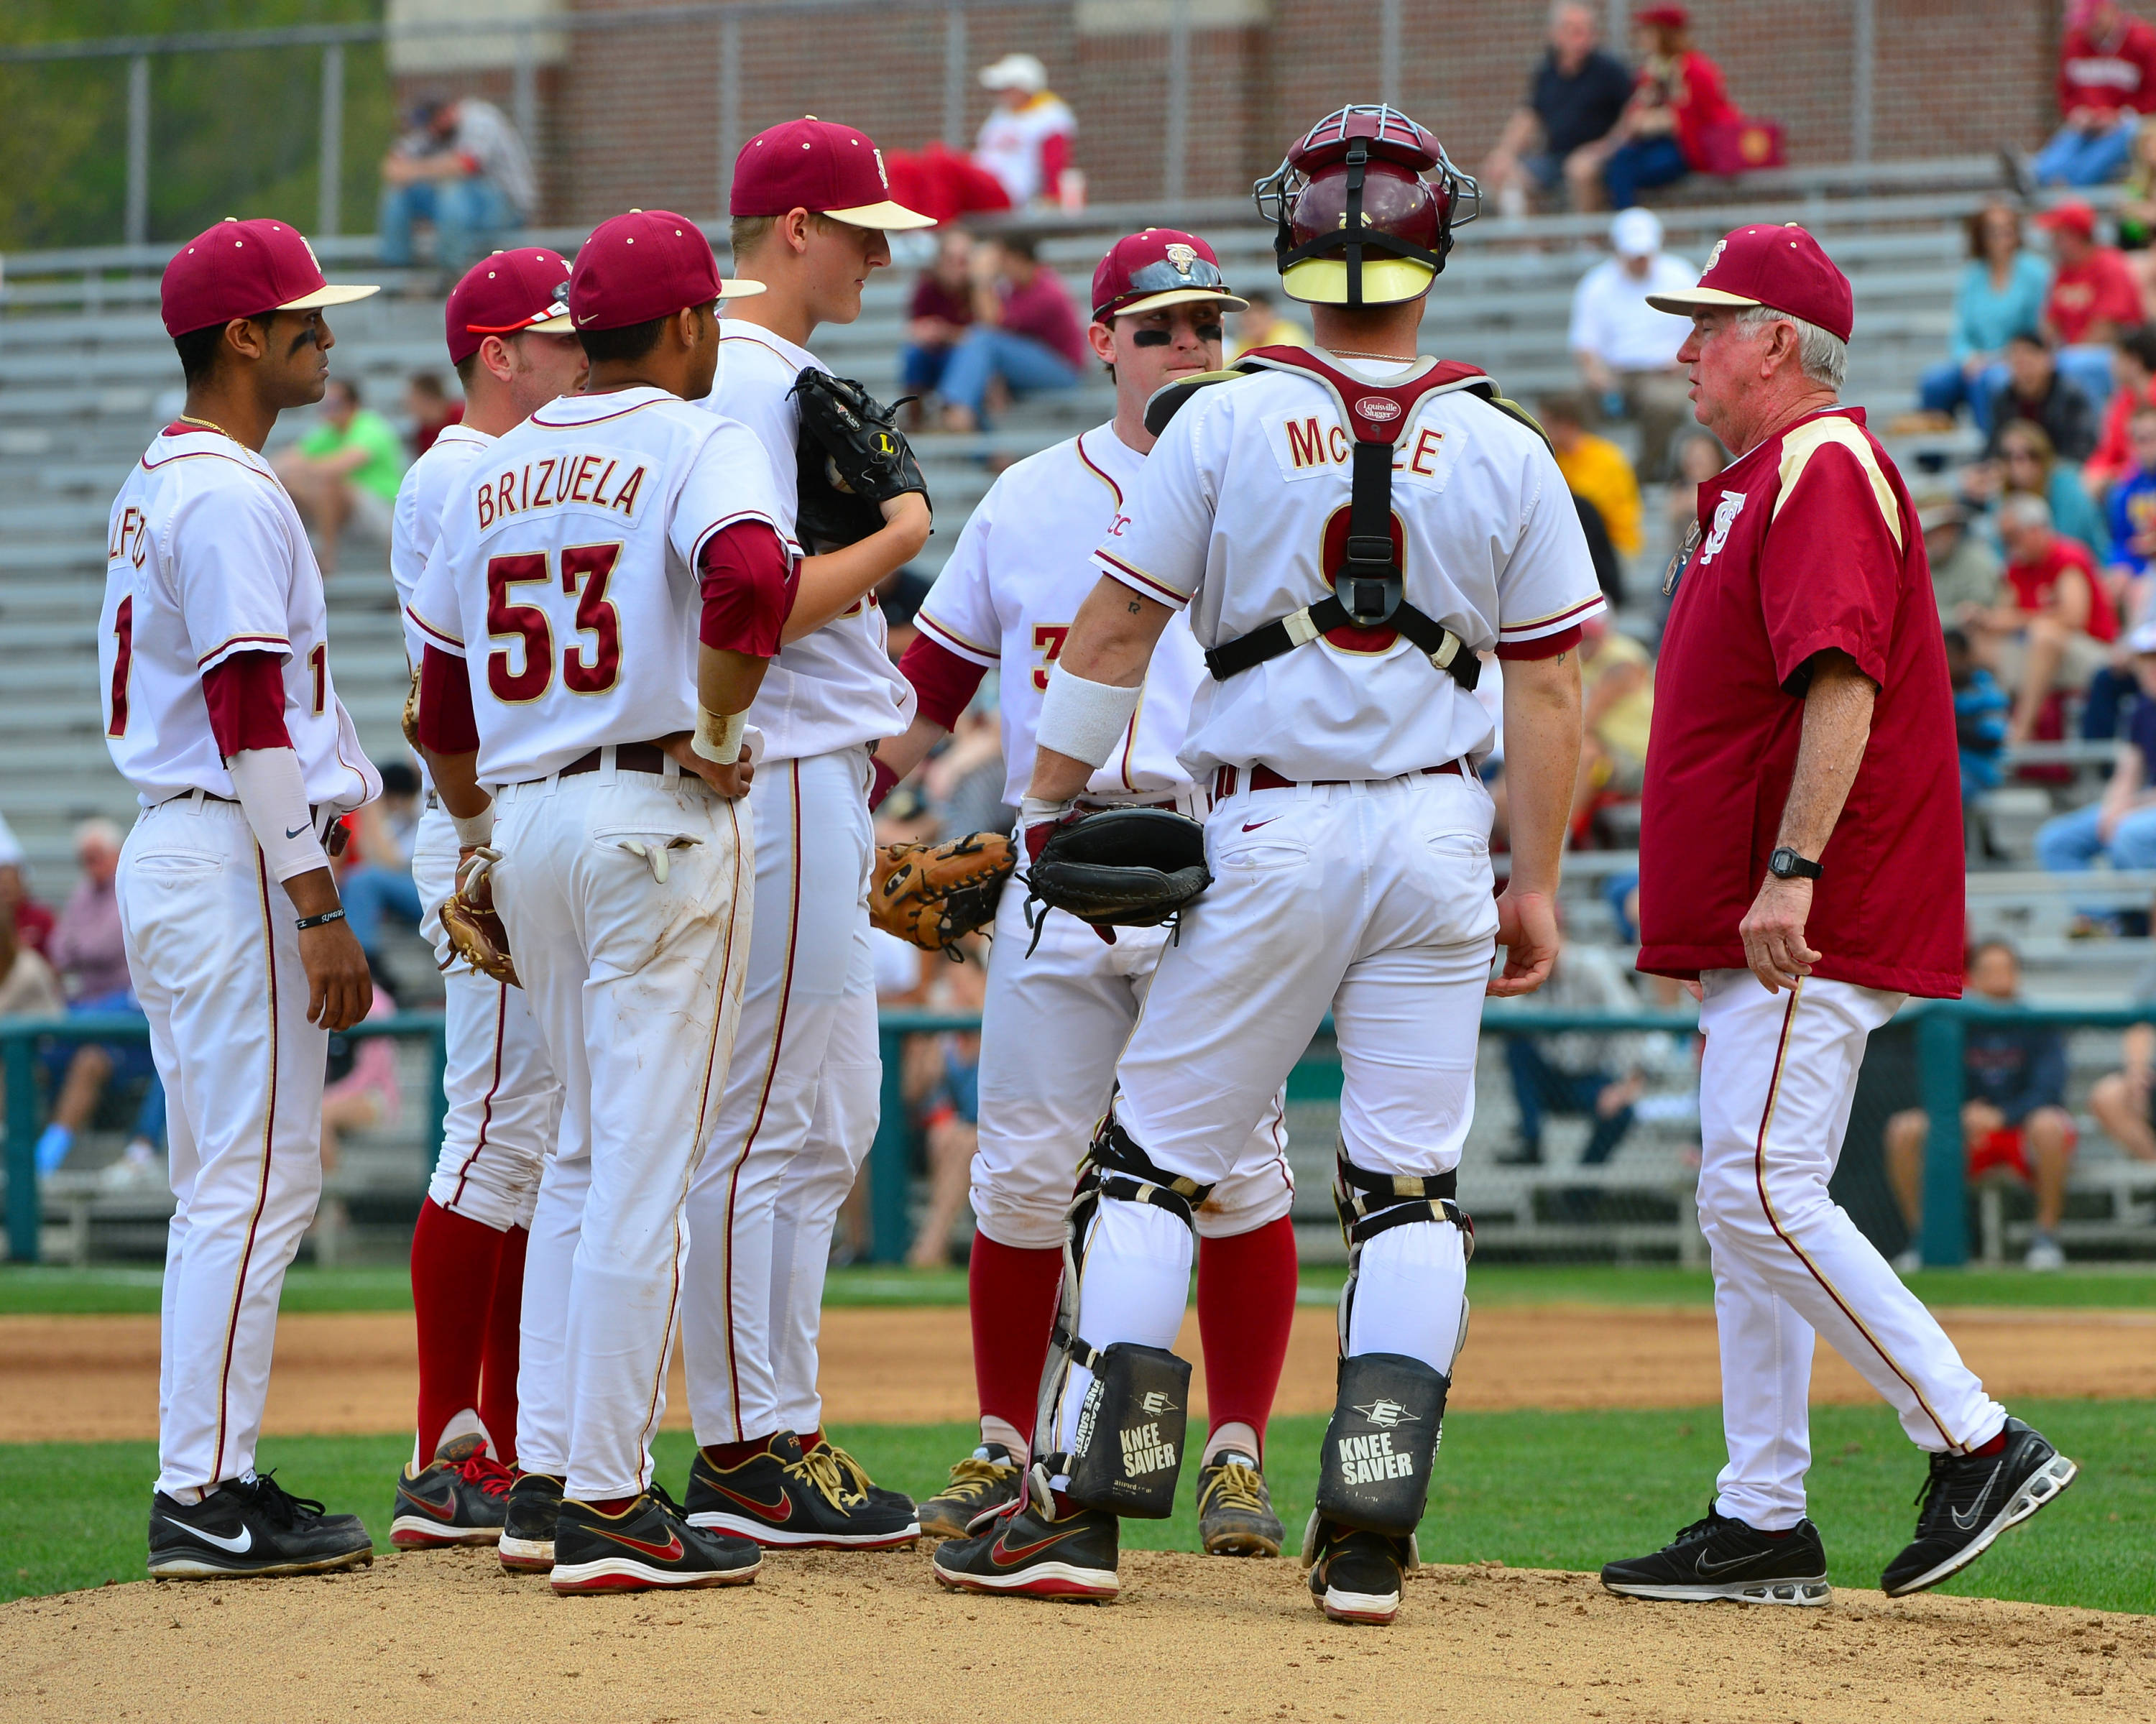 Head coach Mike Martin makes a visit to the mound.